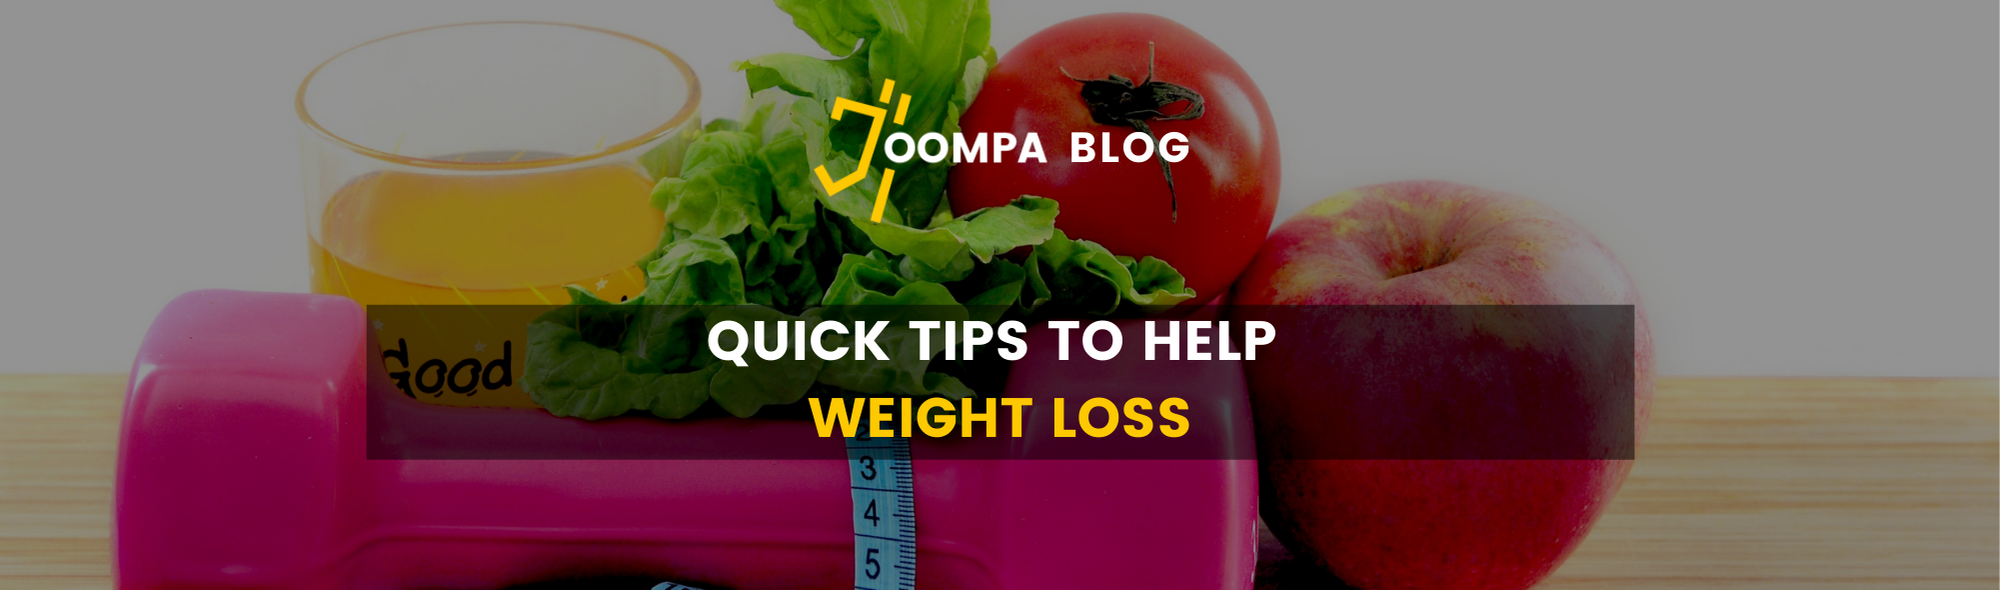 Coach Kazaf's Quick Tips to Help Weight Loss